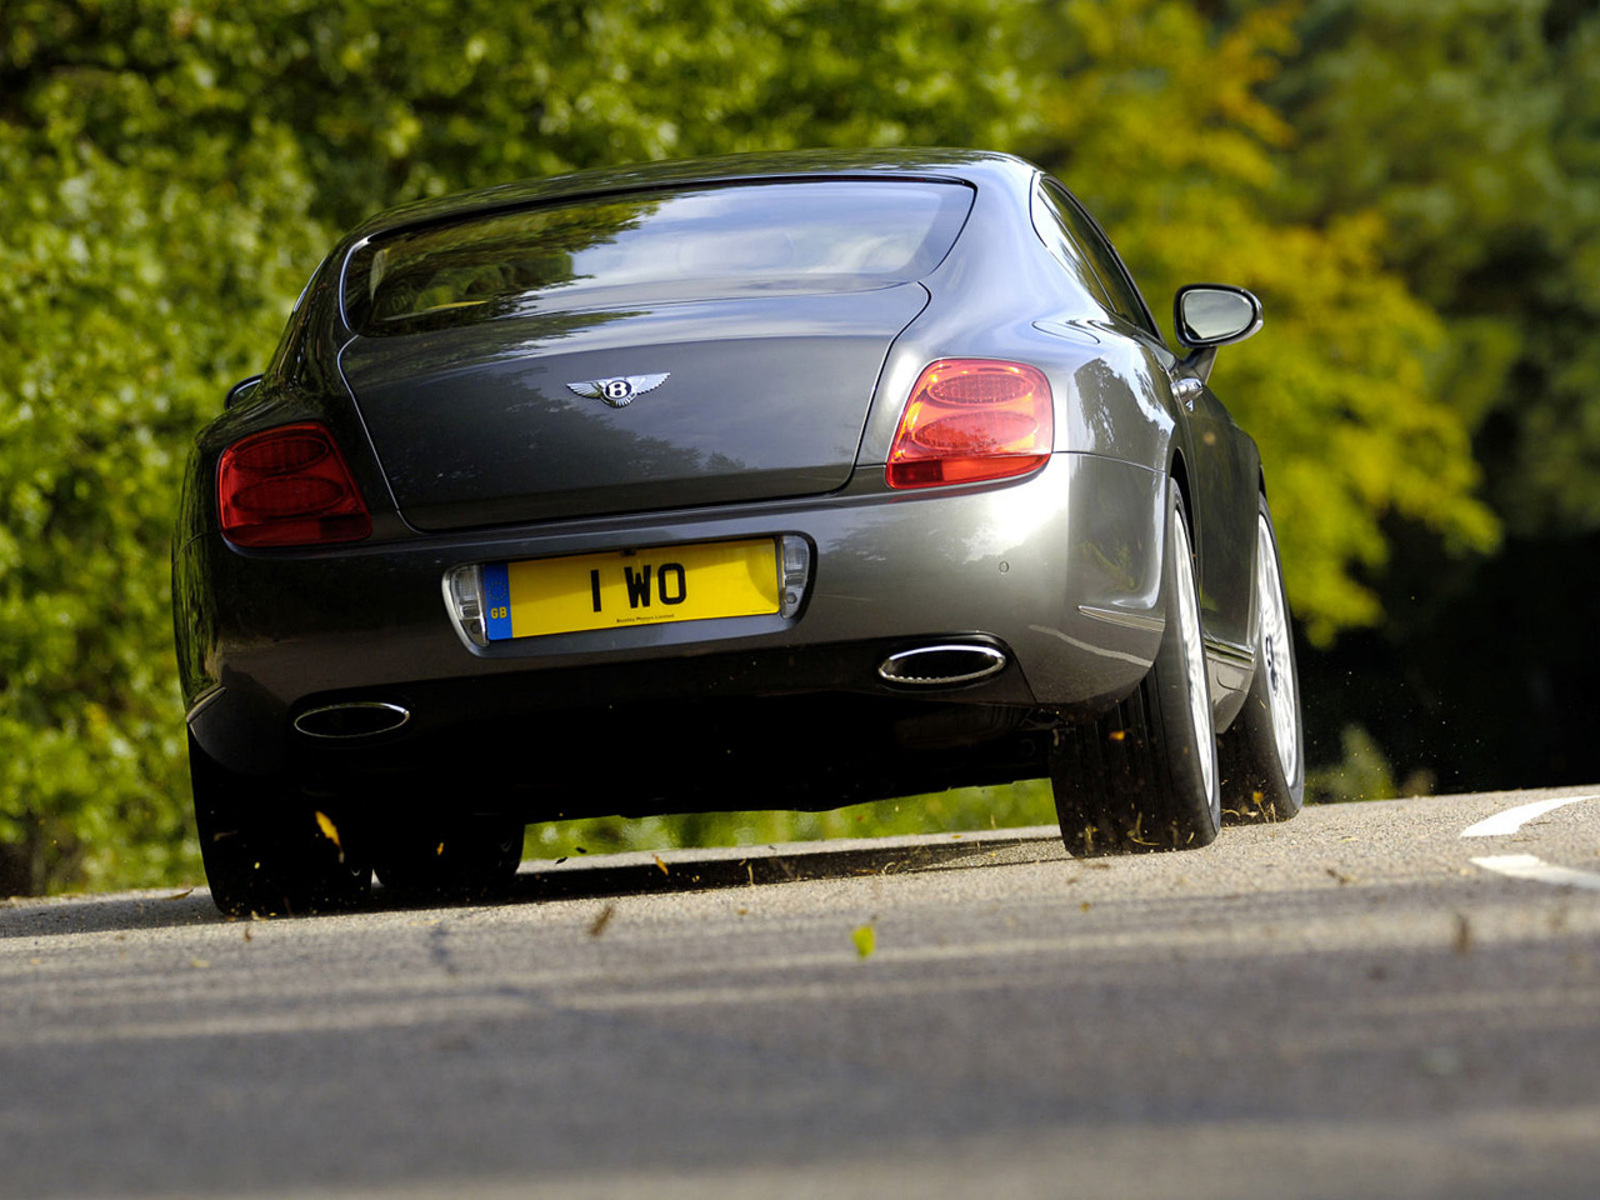 2012 Bentley Continental GT Speed Rear (Photo 4 of 6)